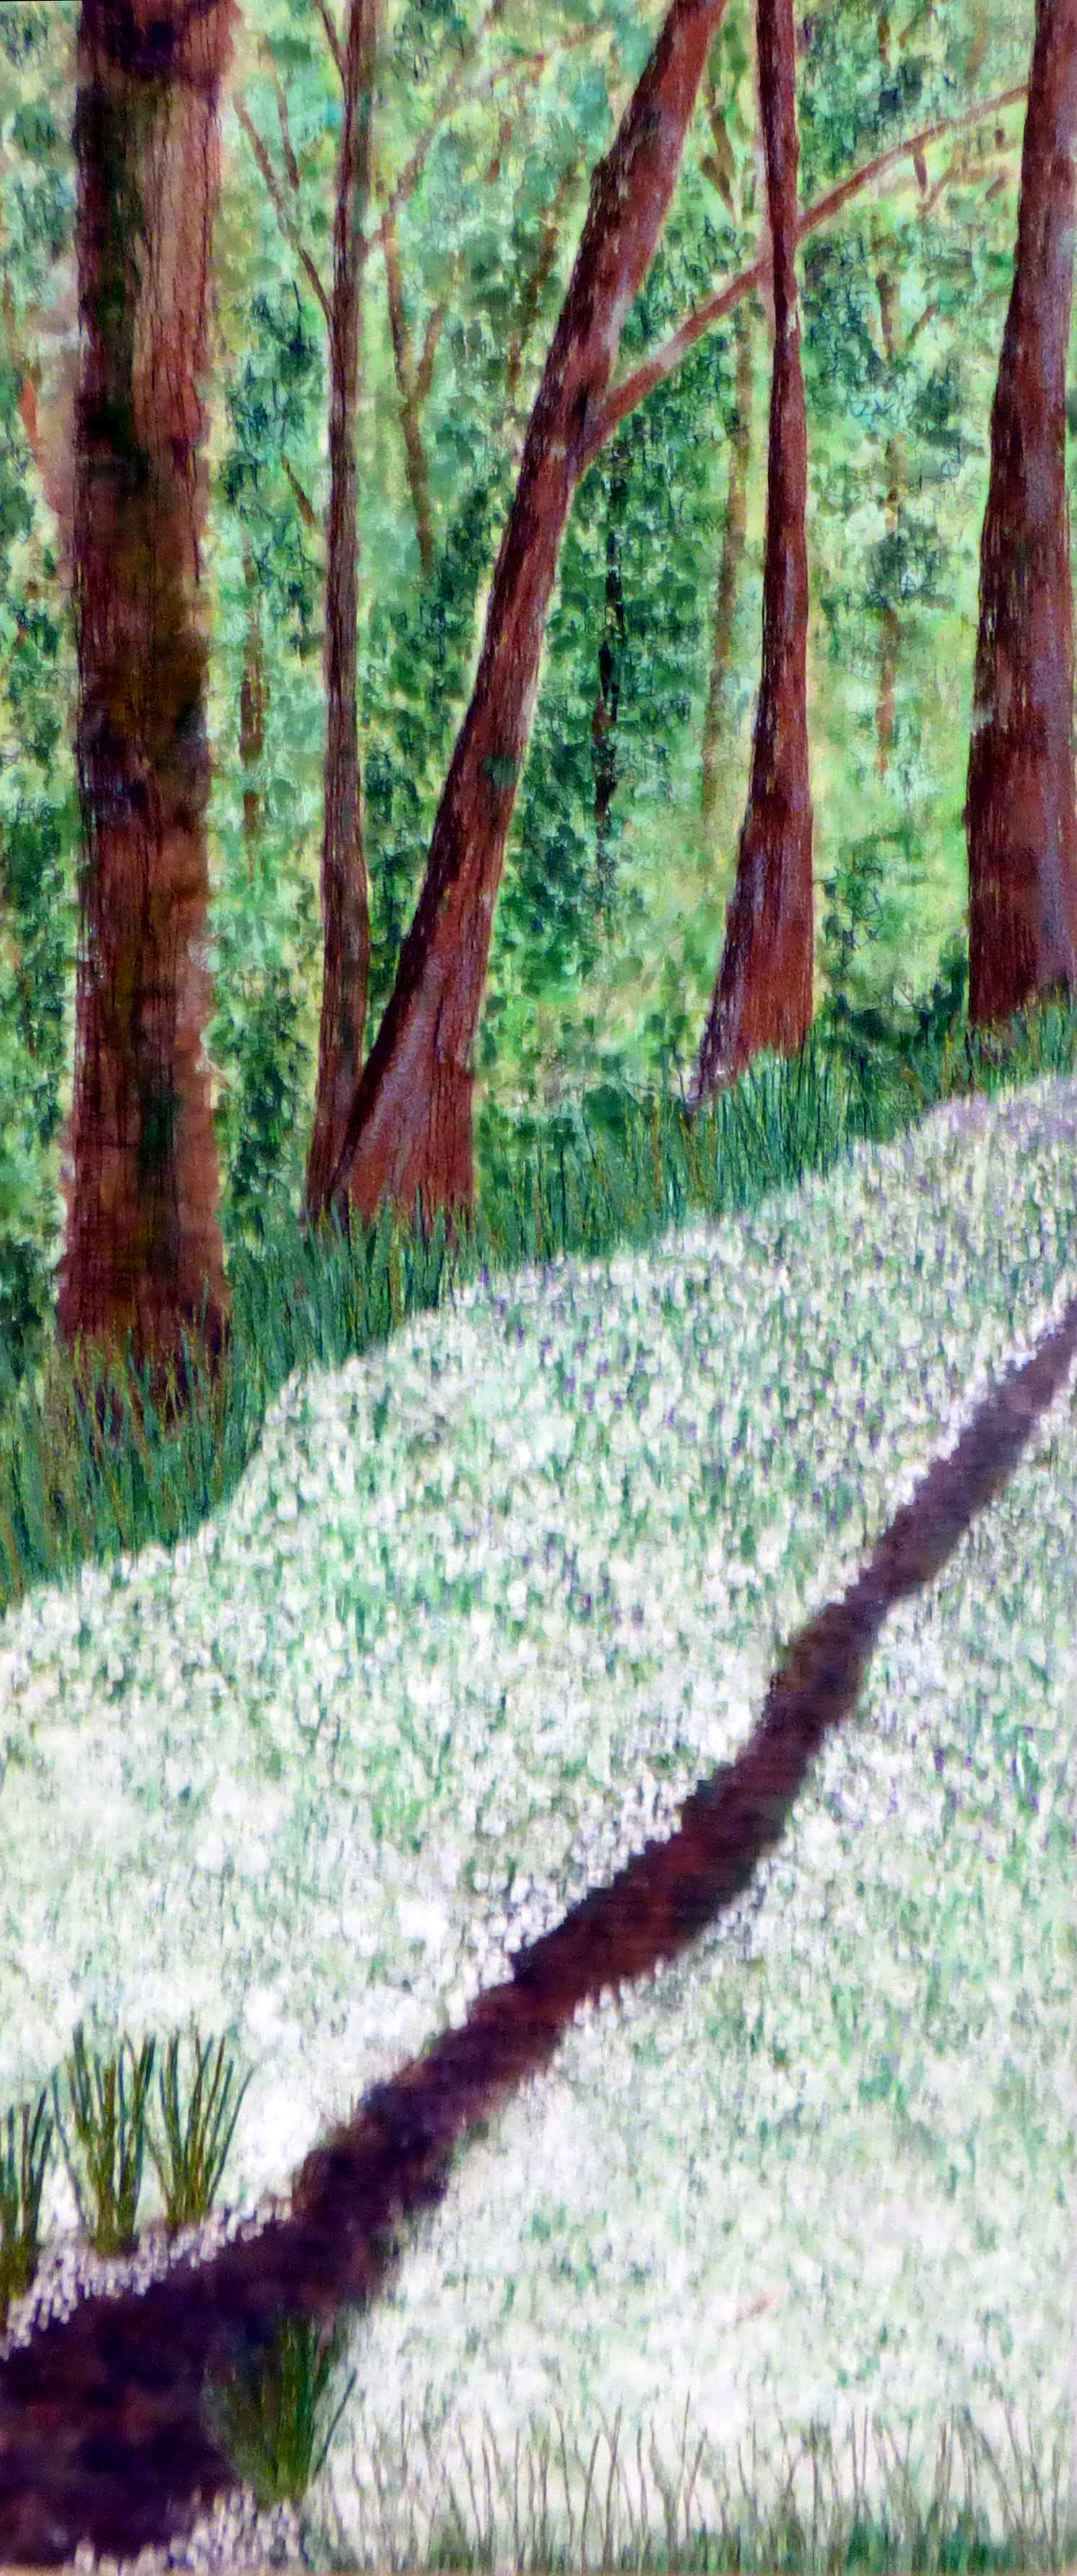 WOODLAND PATH by Liz Leadbetter, fabrics padded, stitched and painted, hand and machine stitched